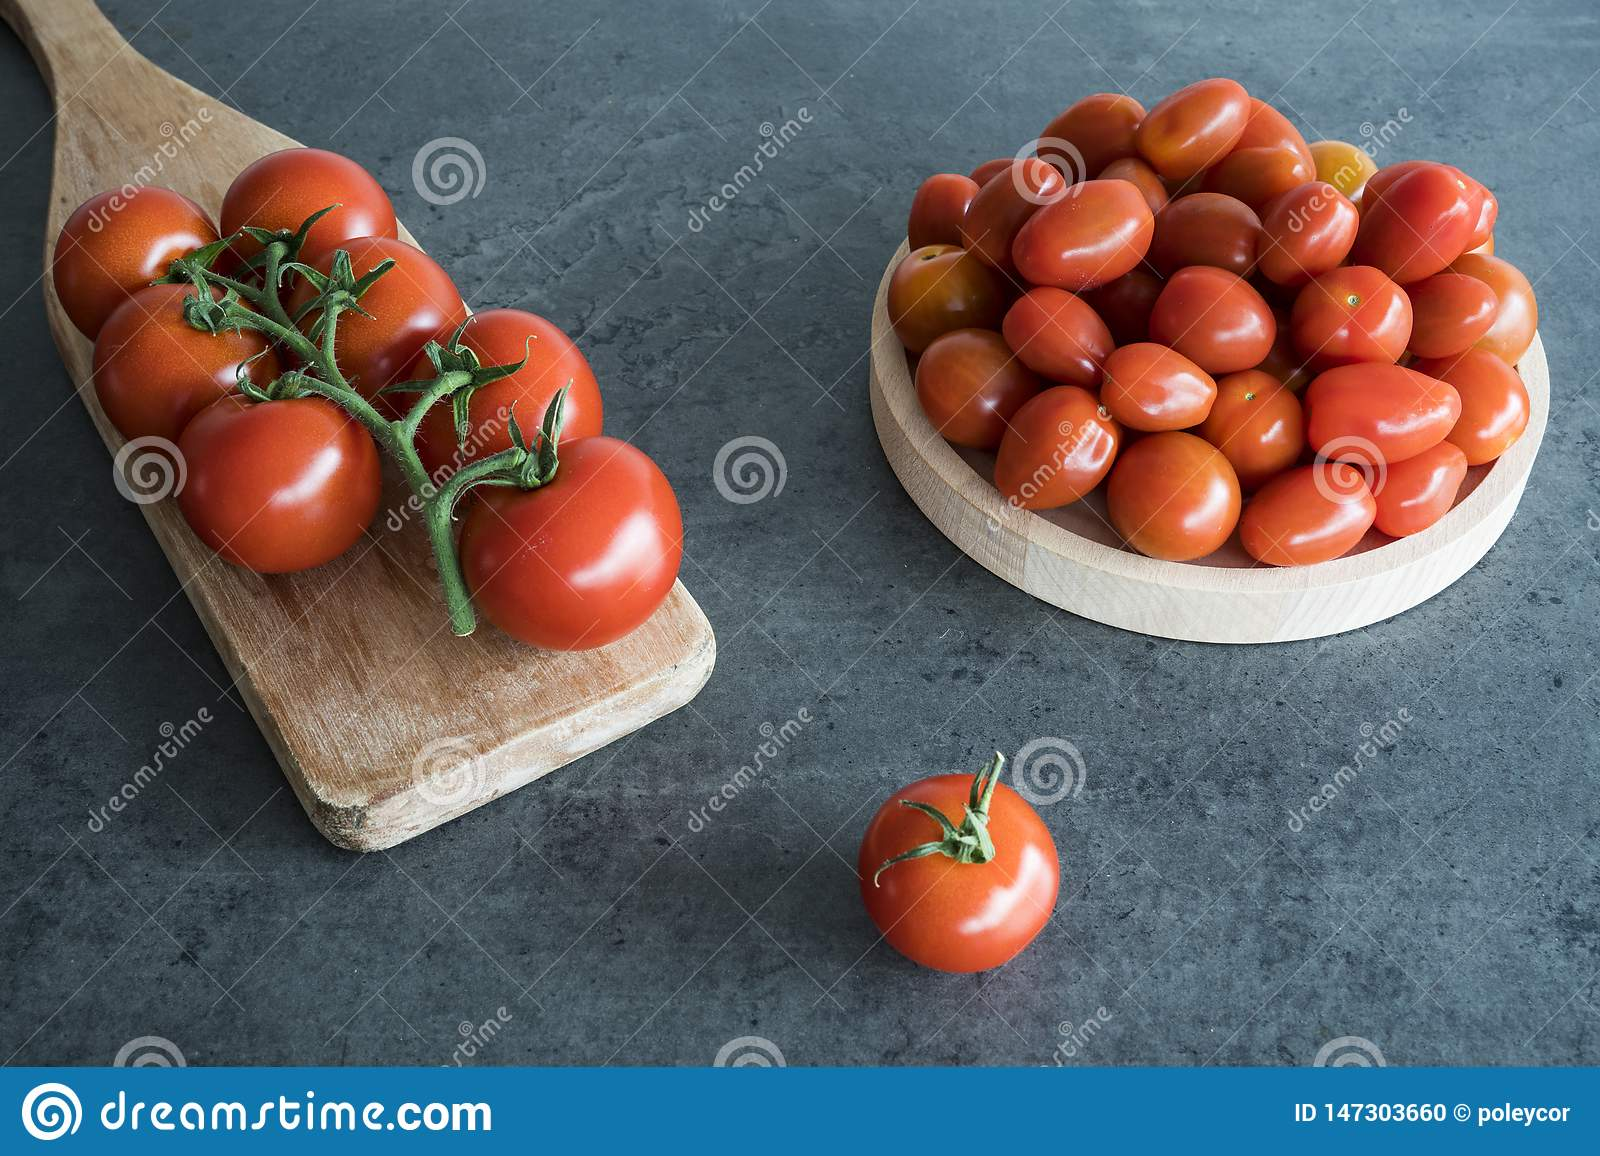 Cherry tomatoes on wooden plate and cutting board,